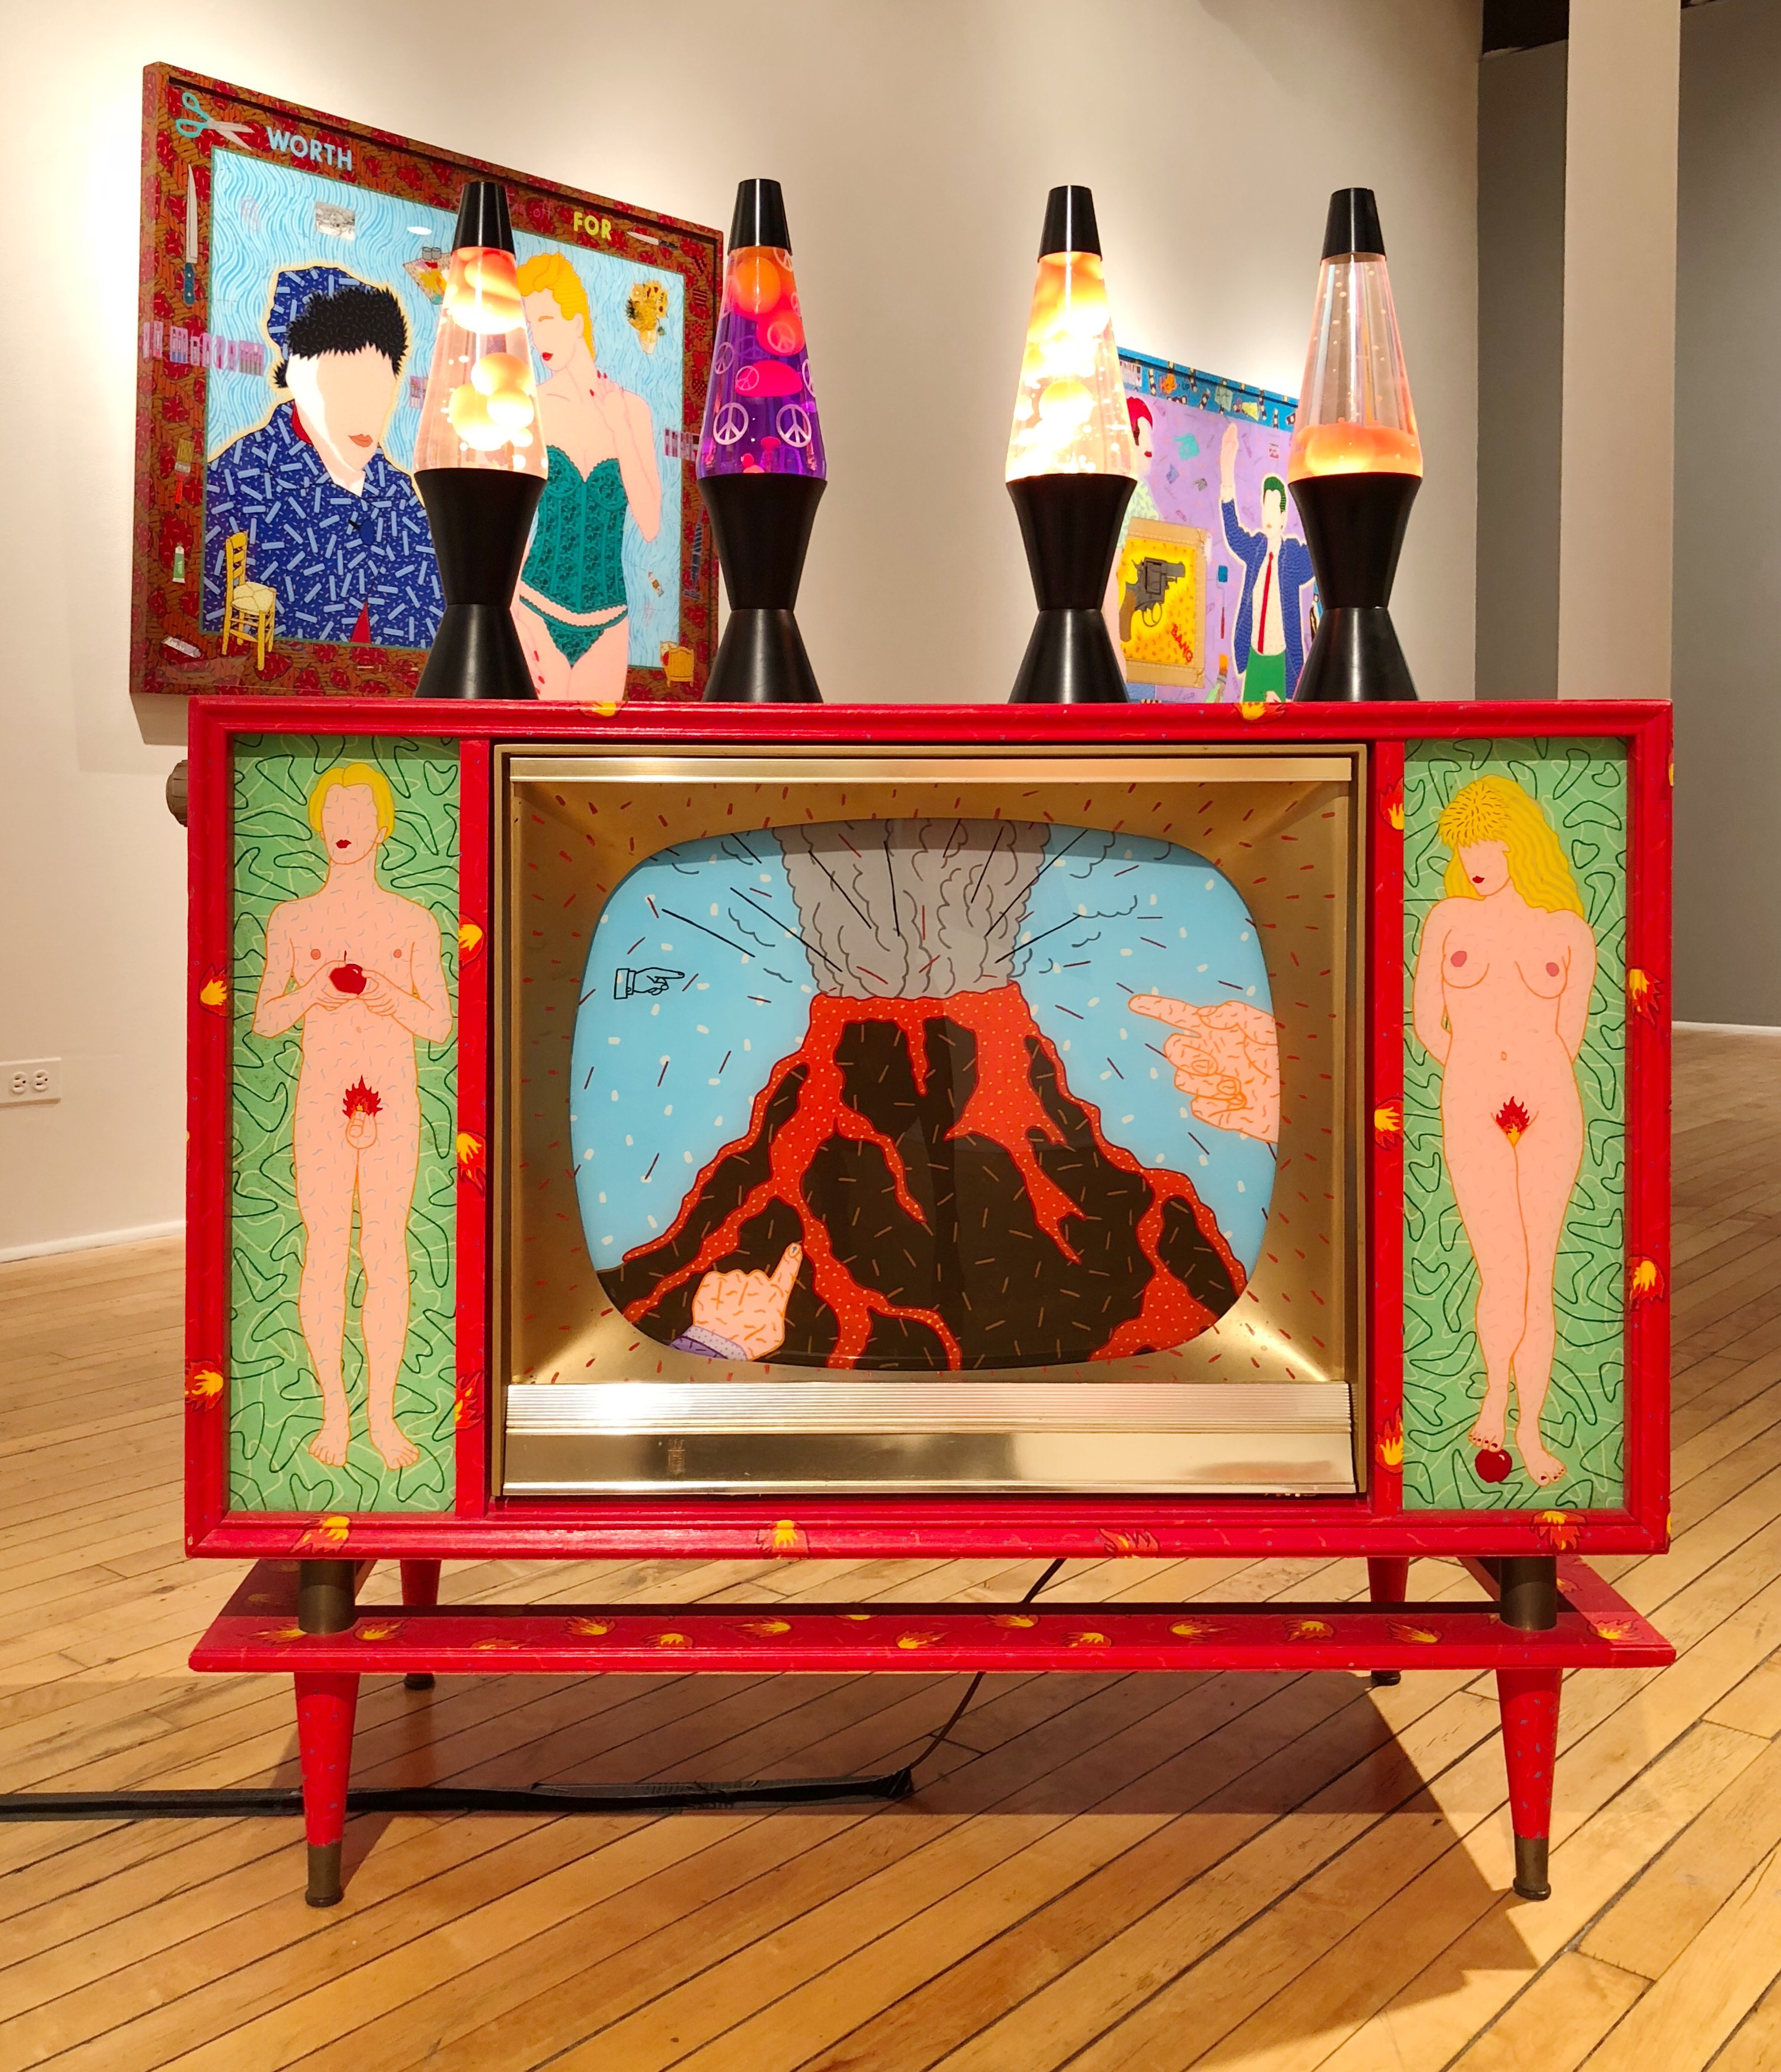 Hot Lava, 1993, 50s TV with 4 lava lamps, 18 x 39.25 x 51.5 in. (2)